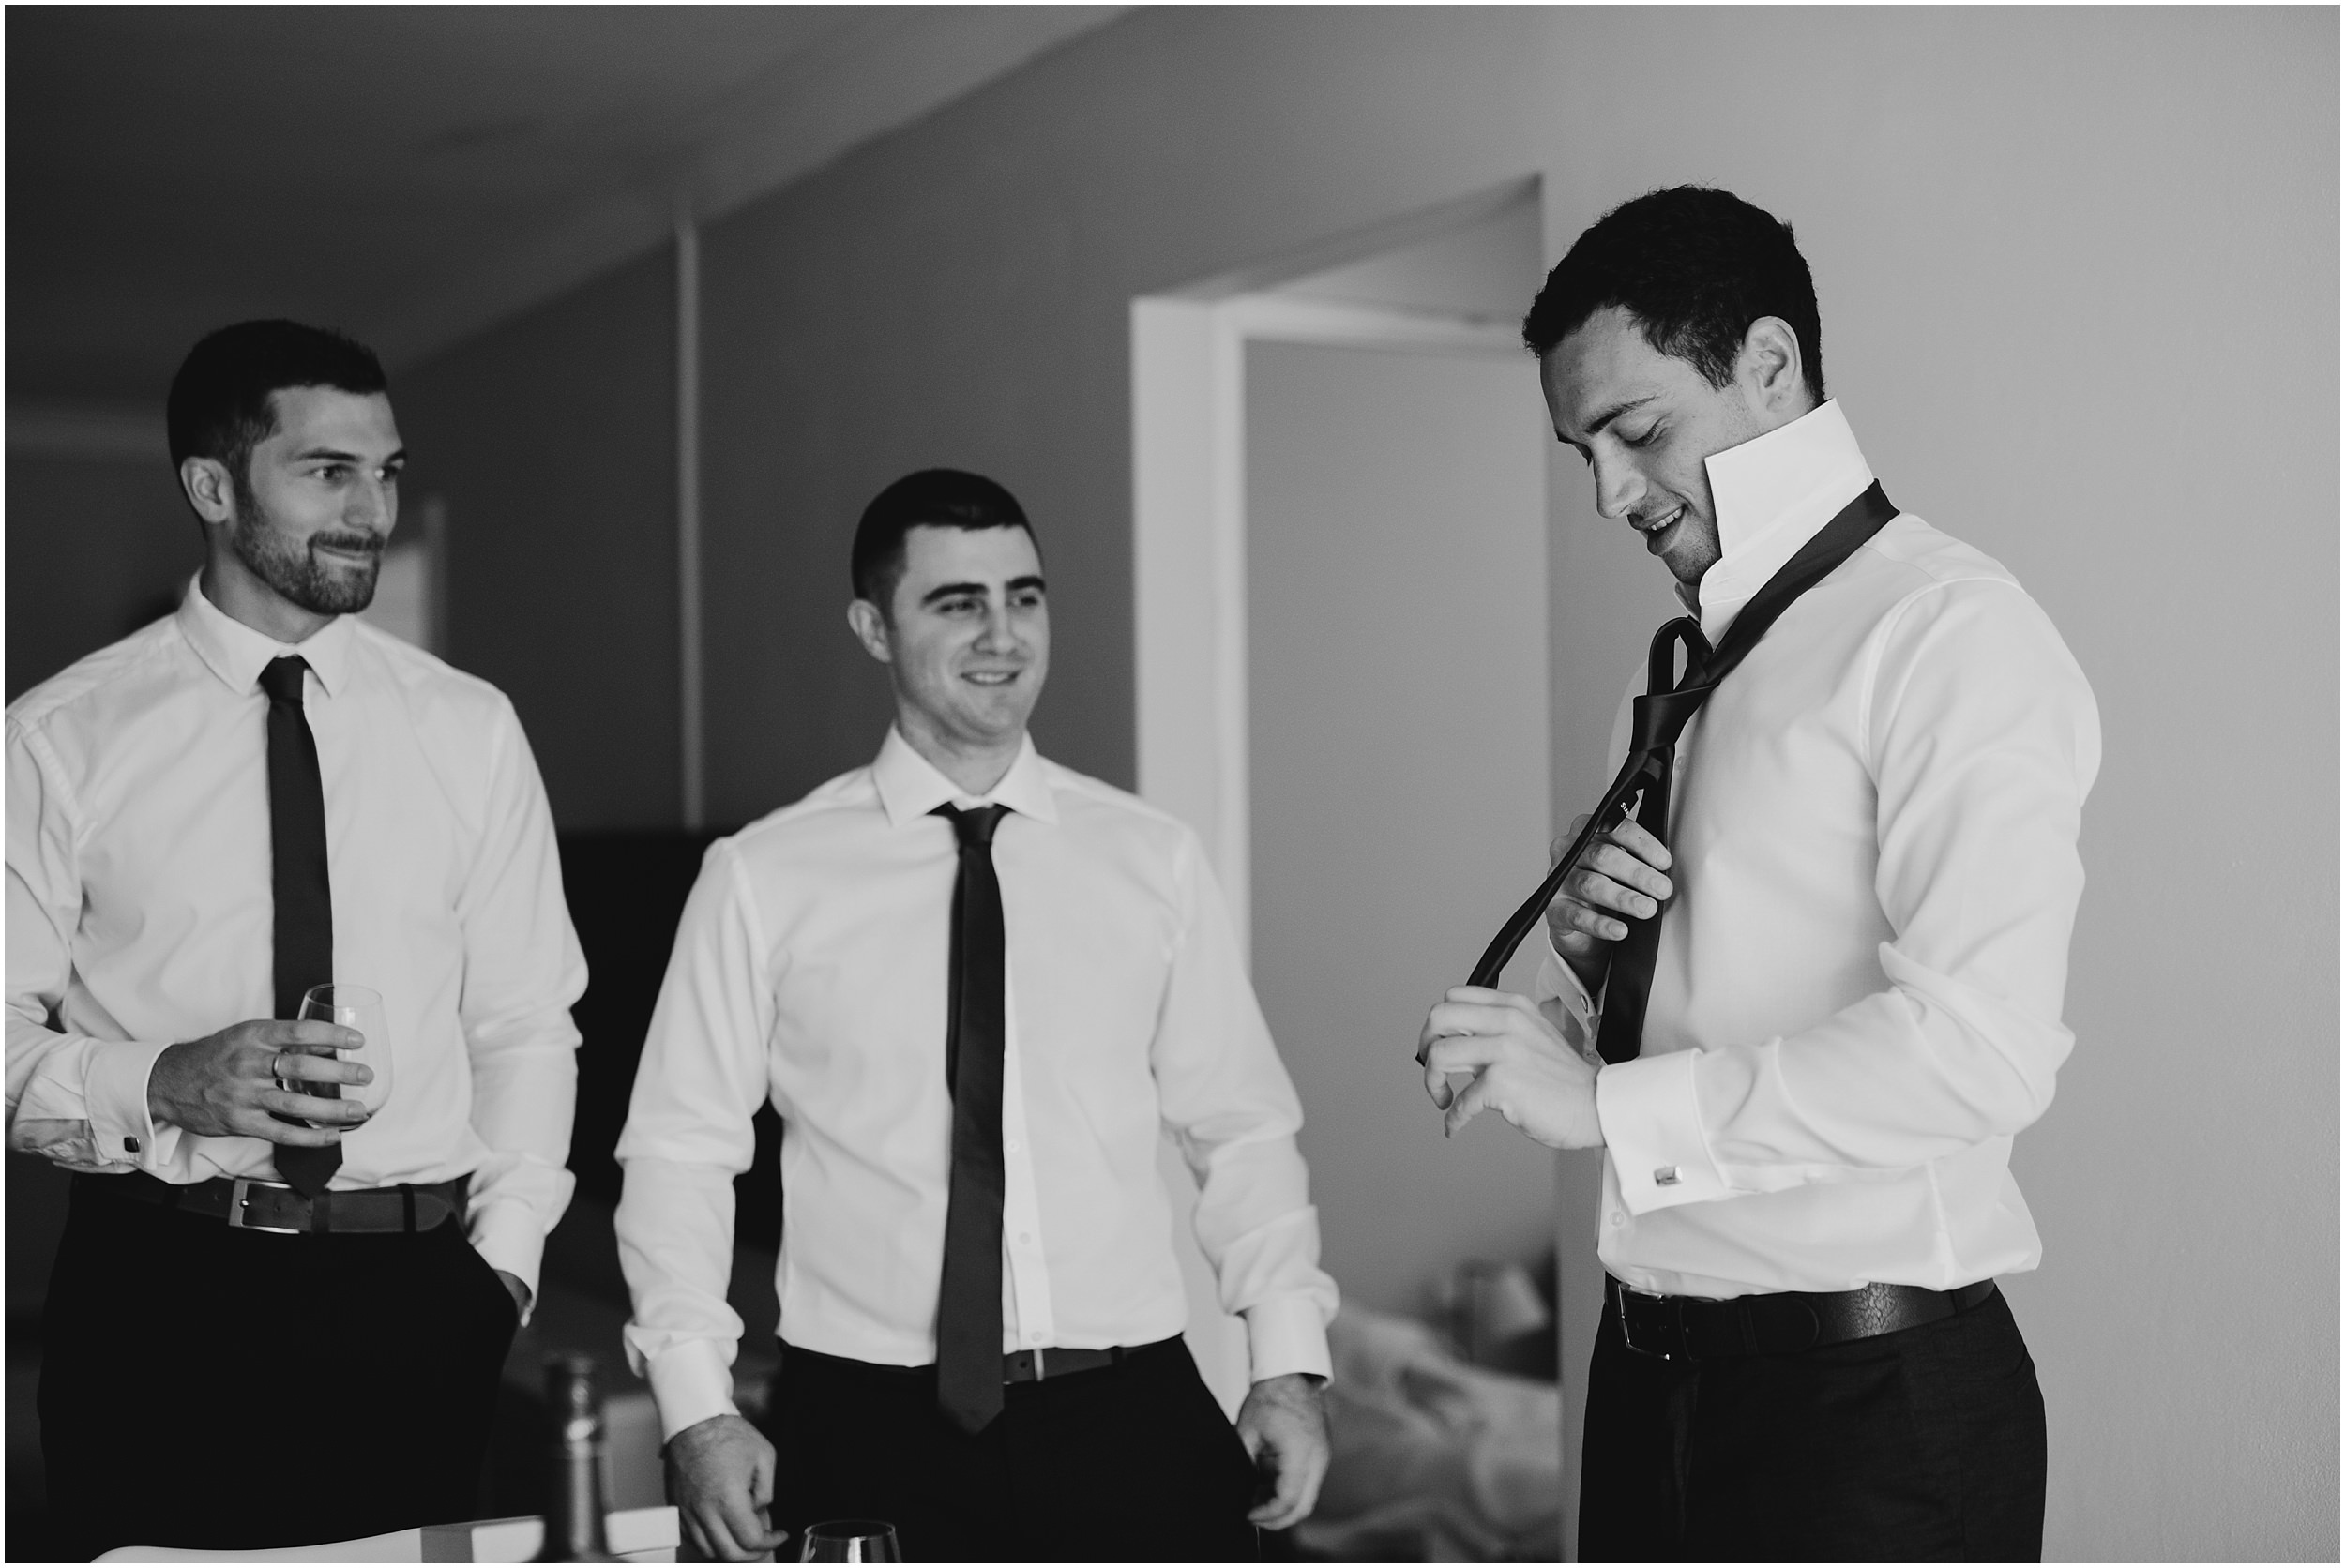 Sydney Wedding - Groomsmen